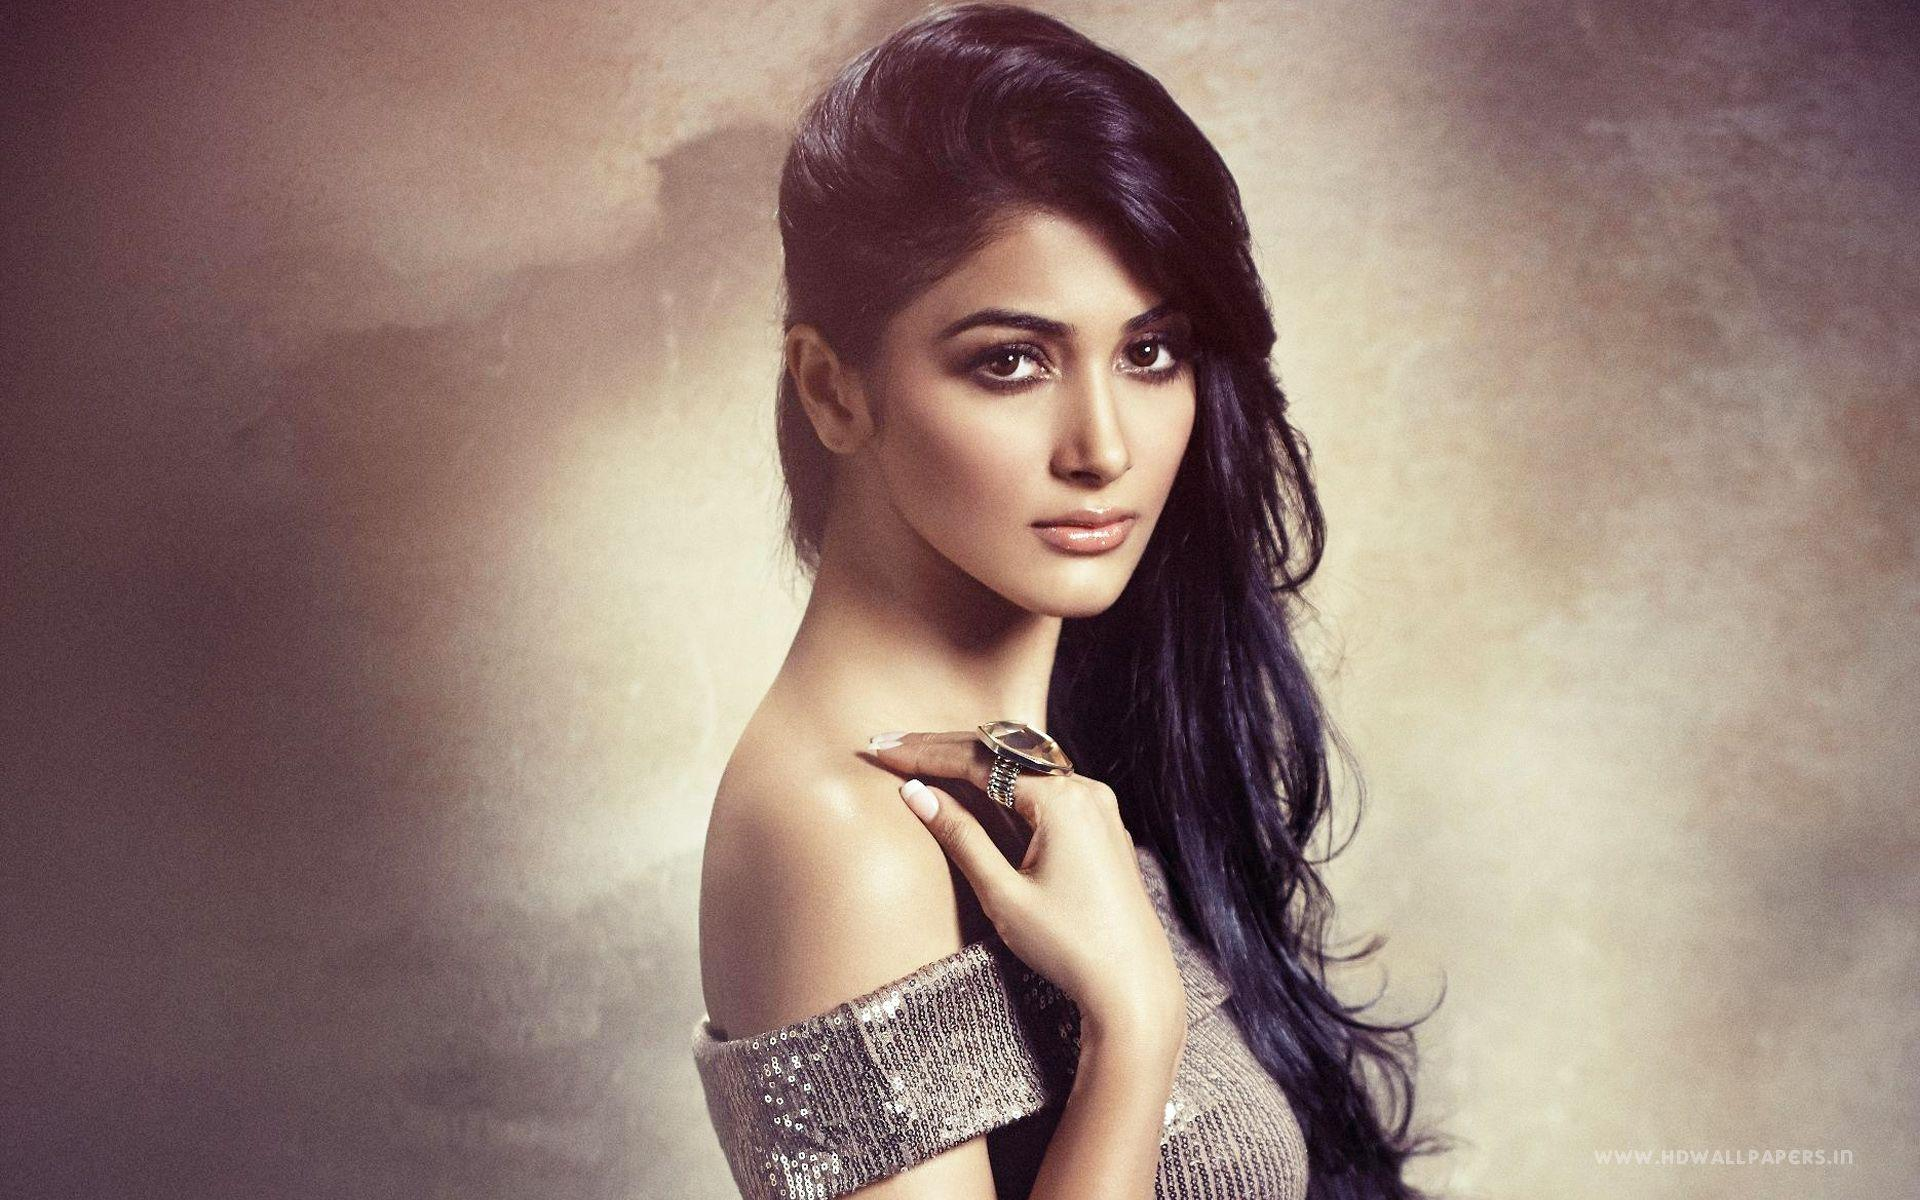 bollywood actress hd wallpapers - wallpaper cave